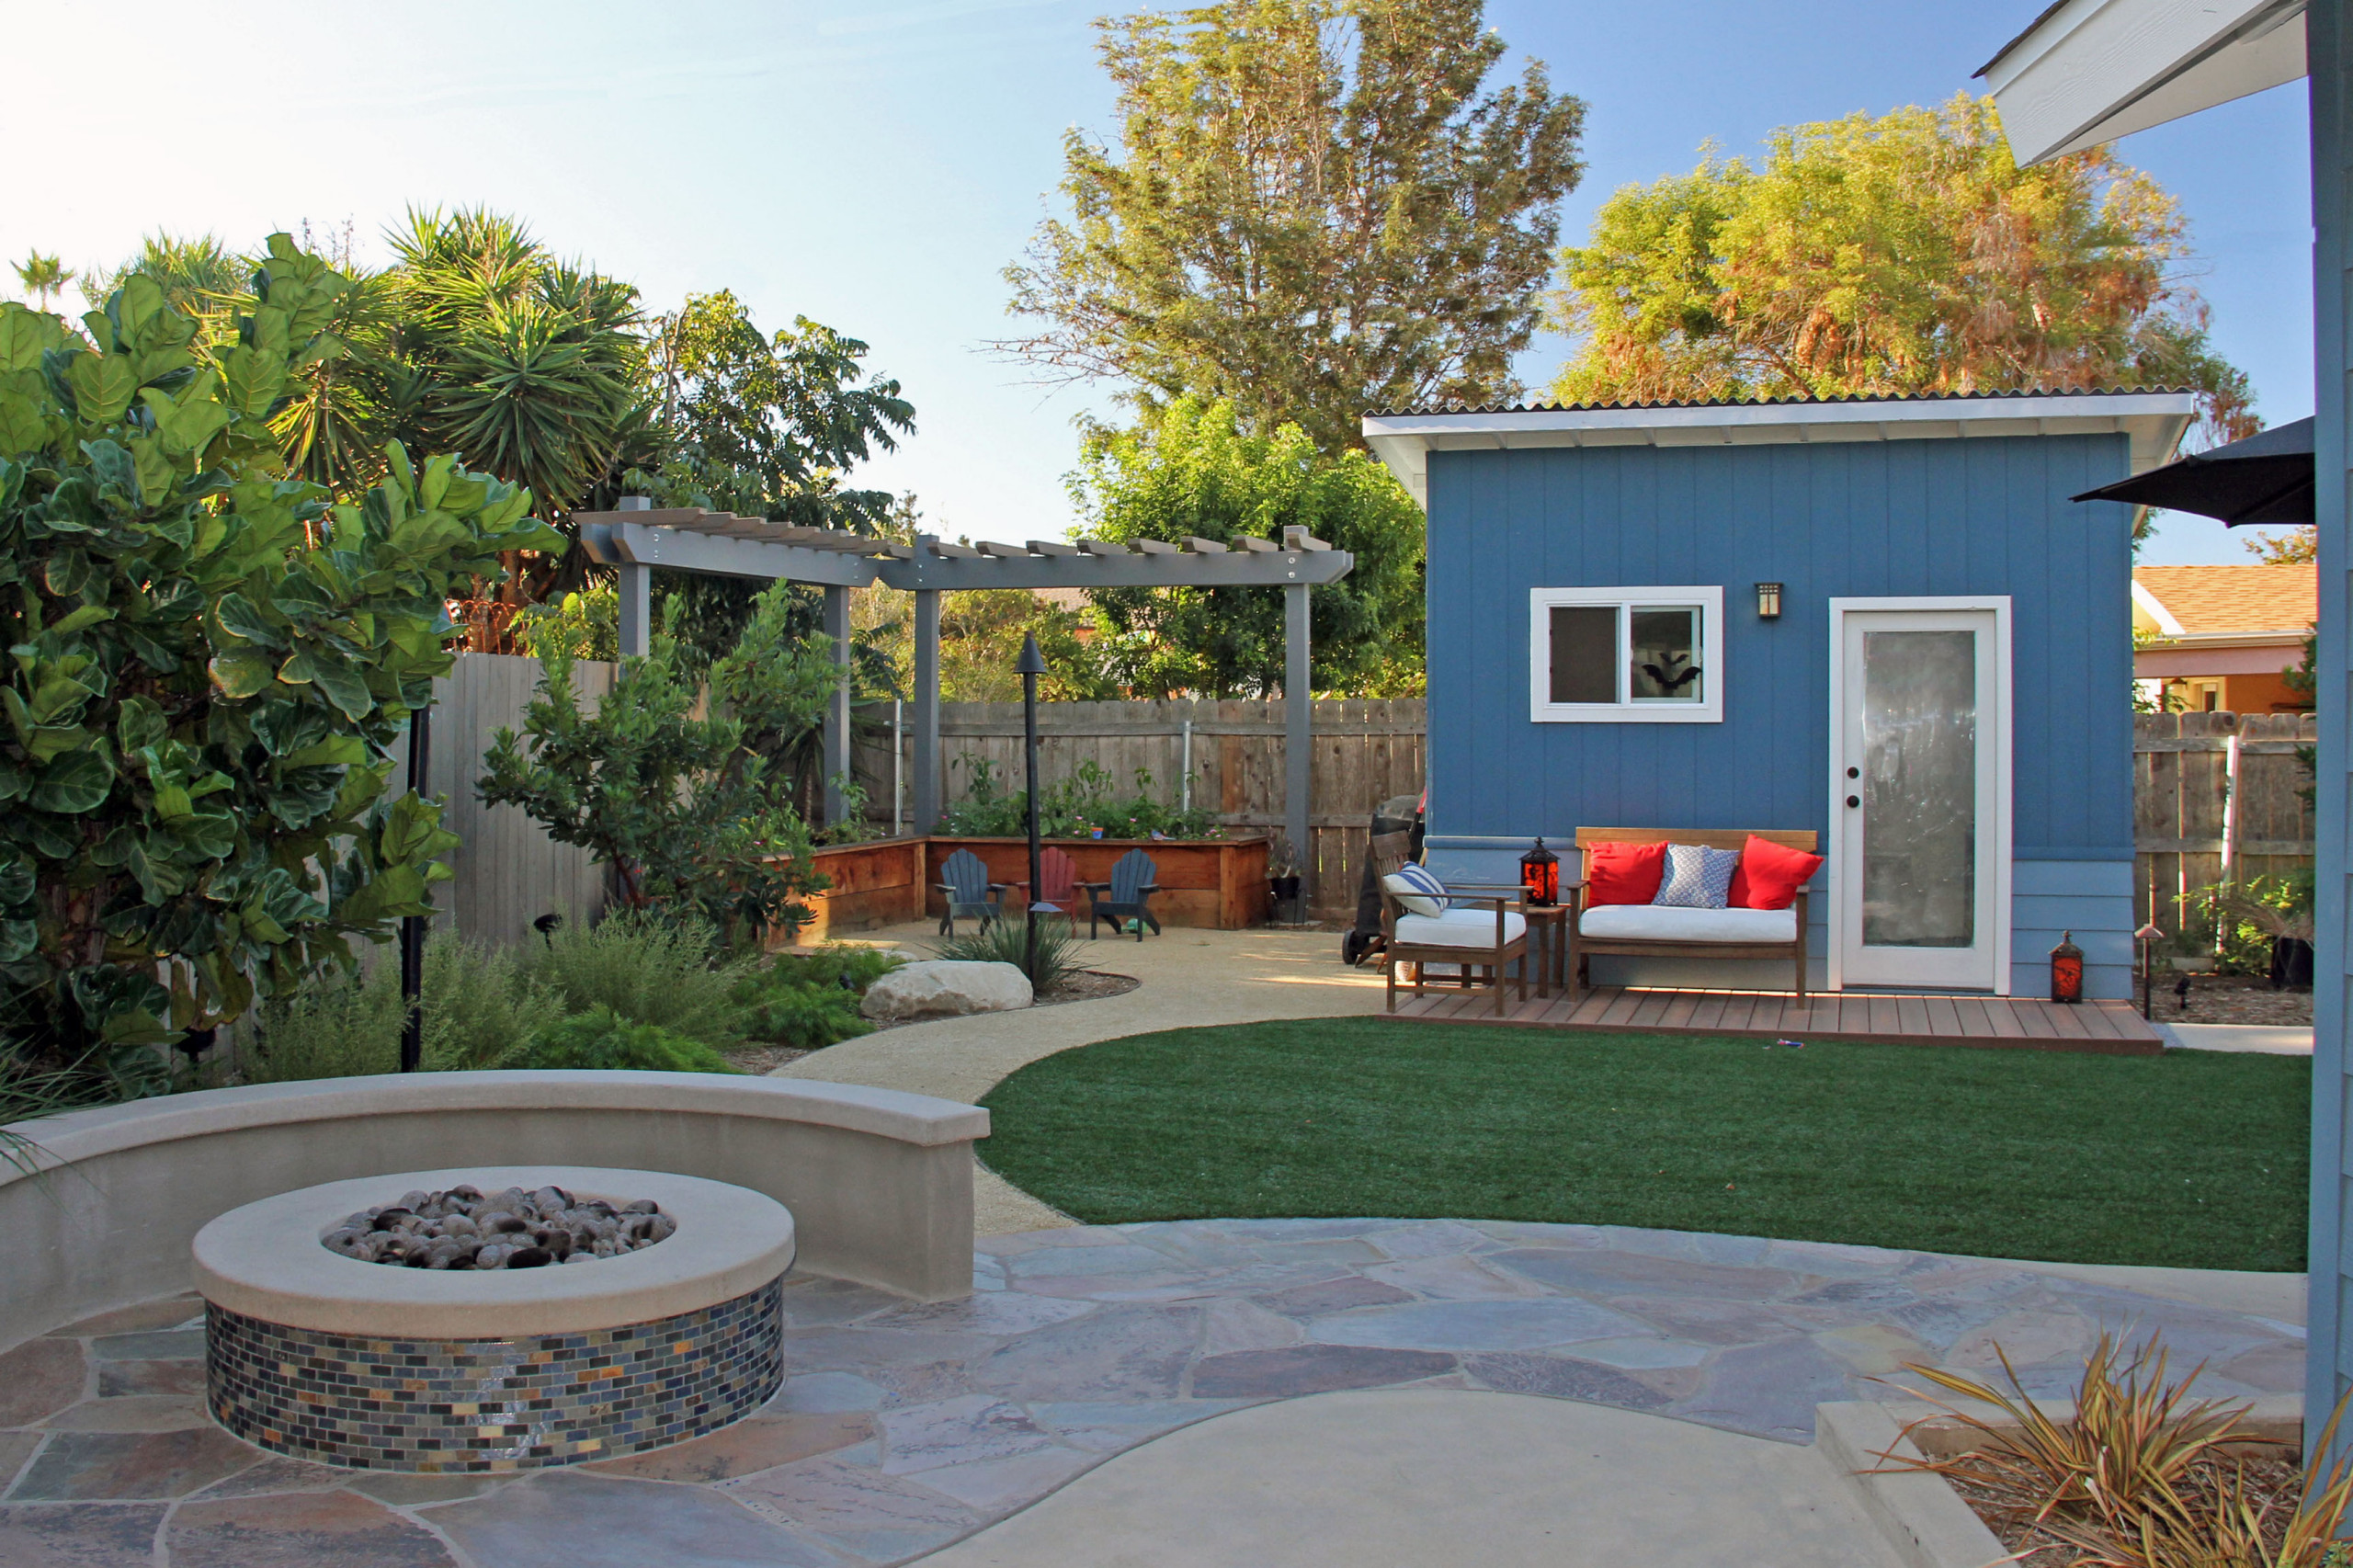 Fire Pit Among Turf, ADU, and Vegetable Garden